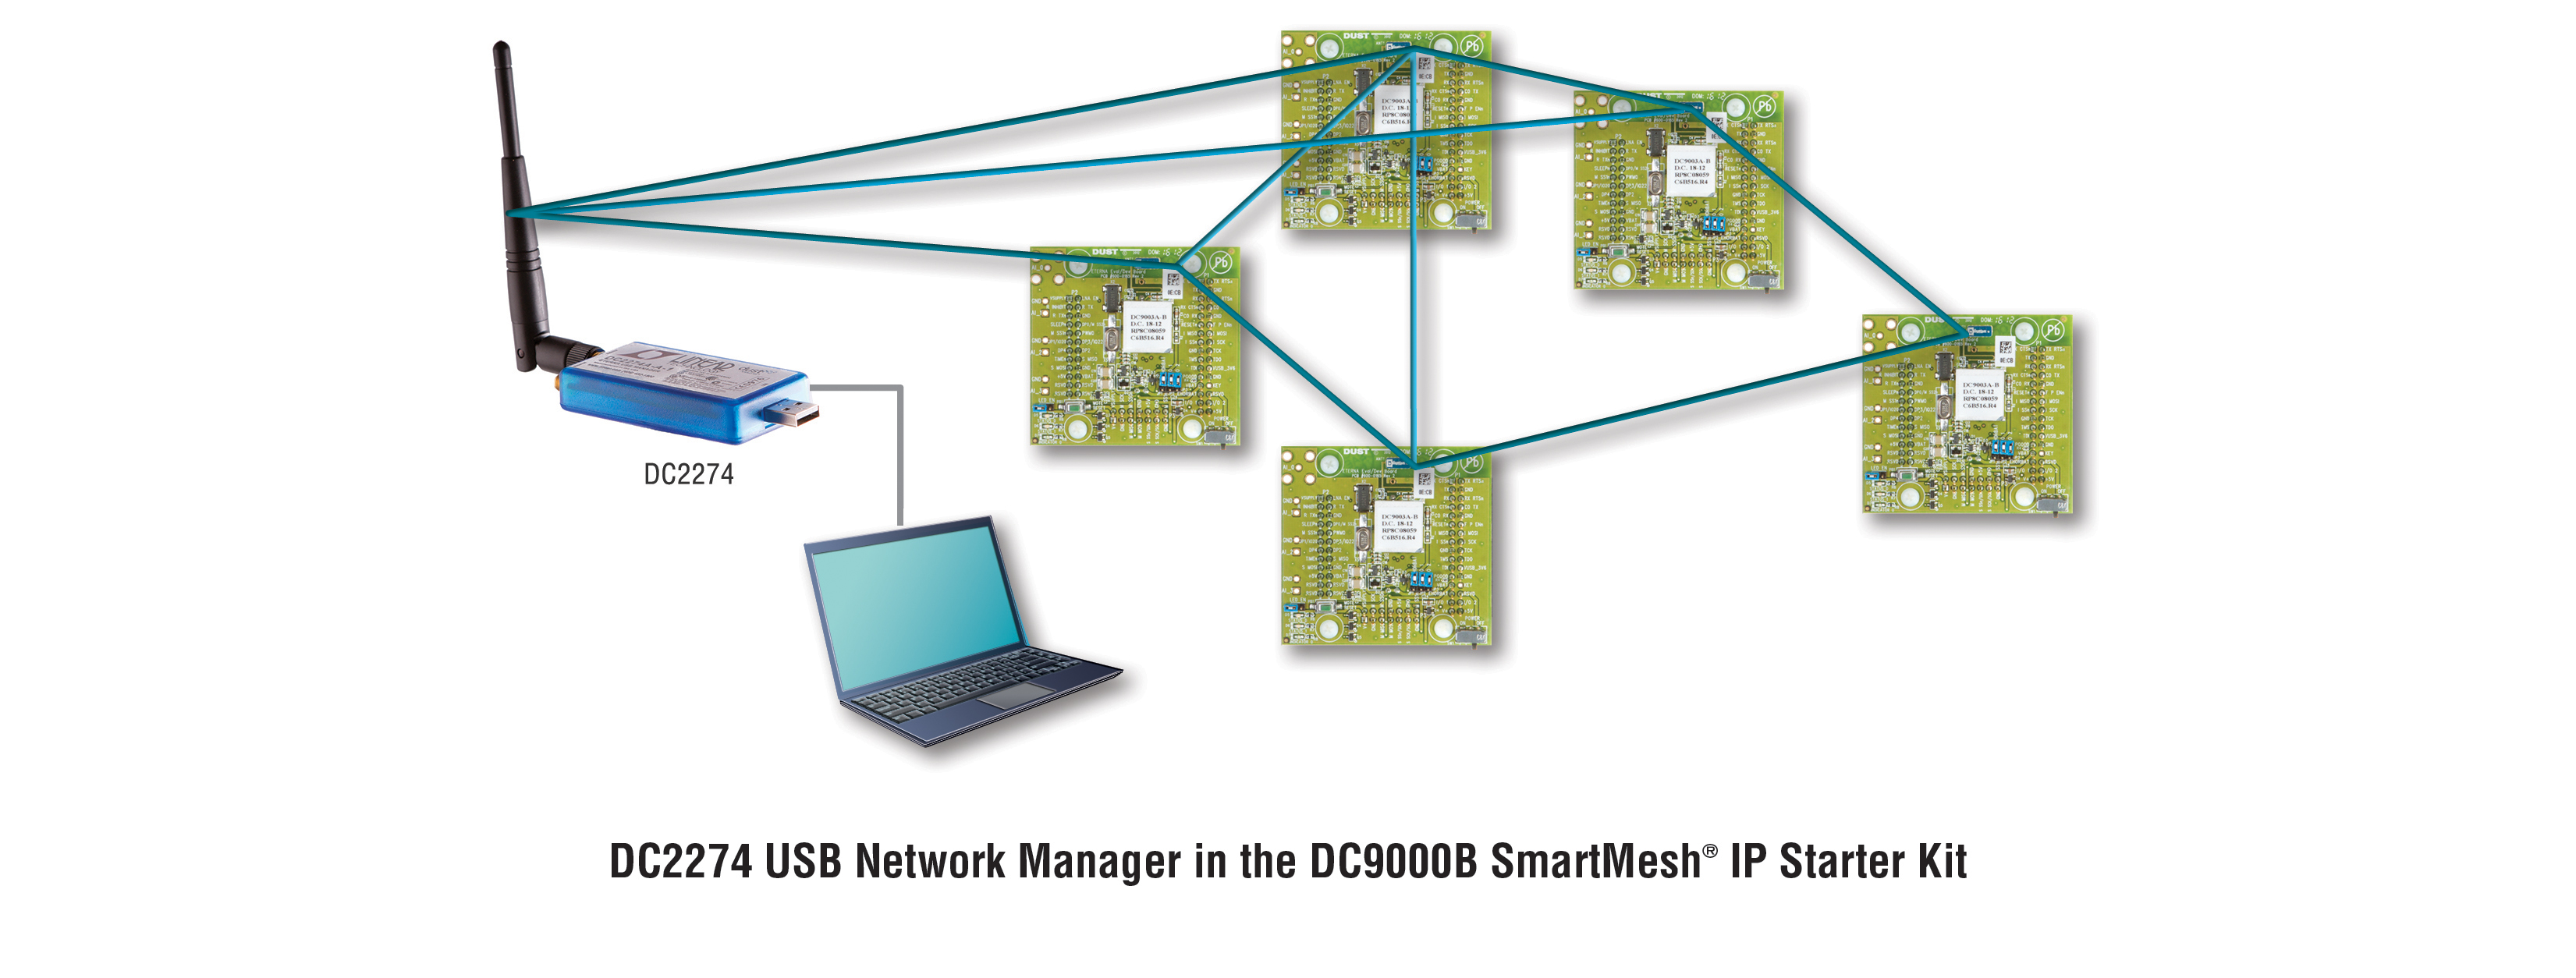 DC2274A USB network manager in the DC9000B SmartMesh IP starter kit